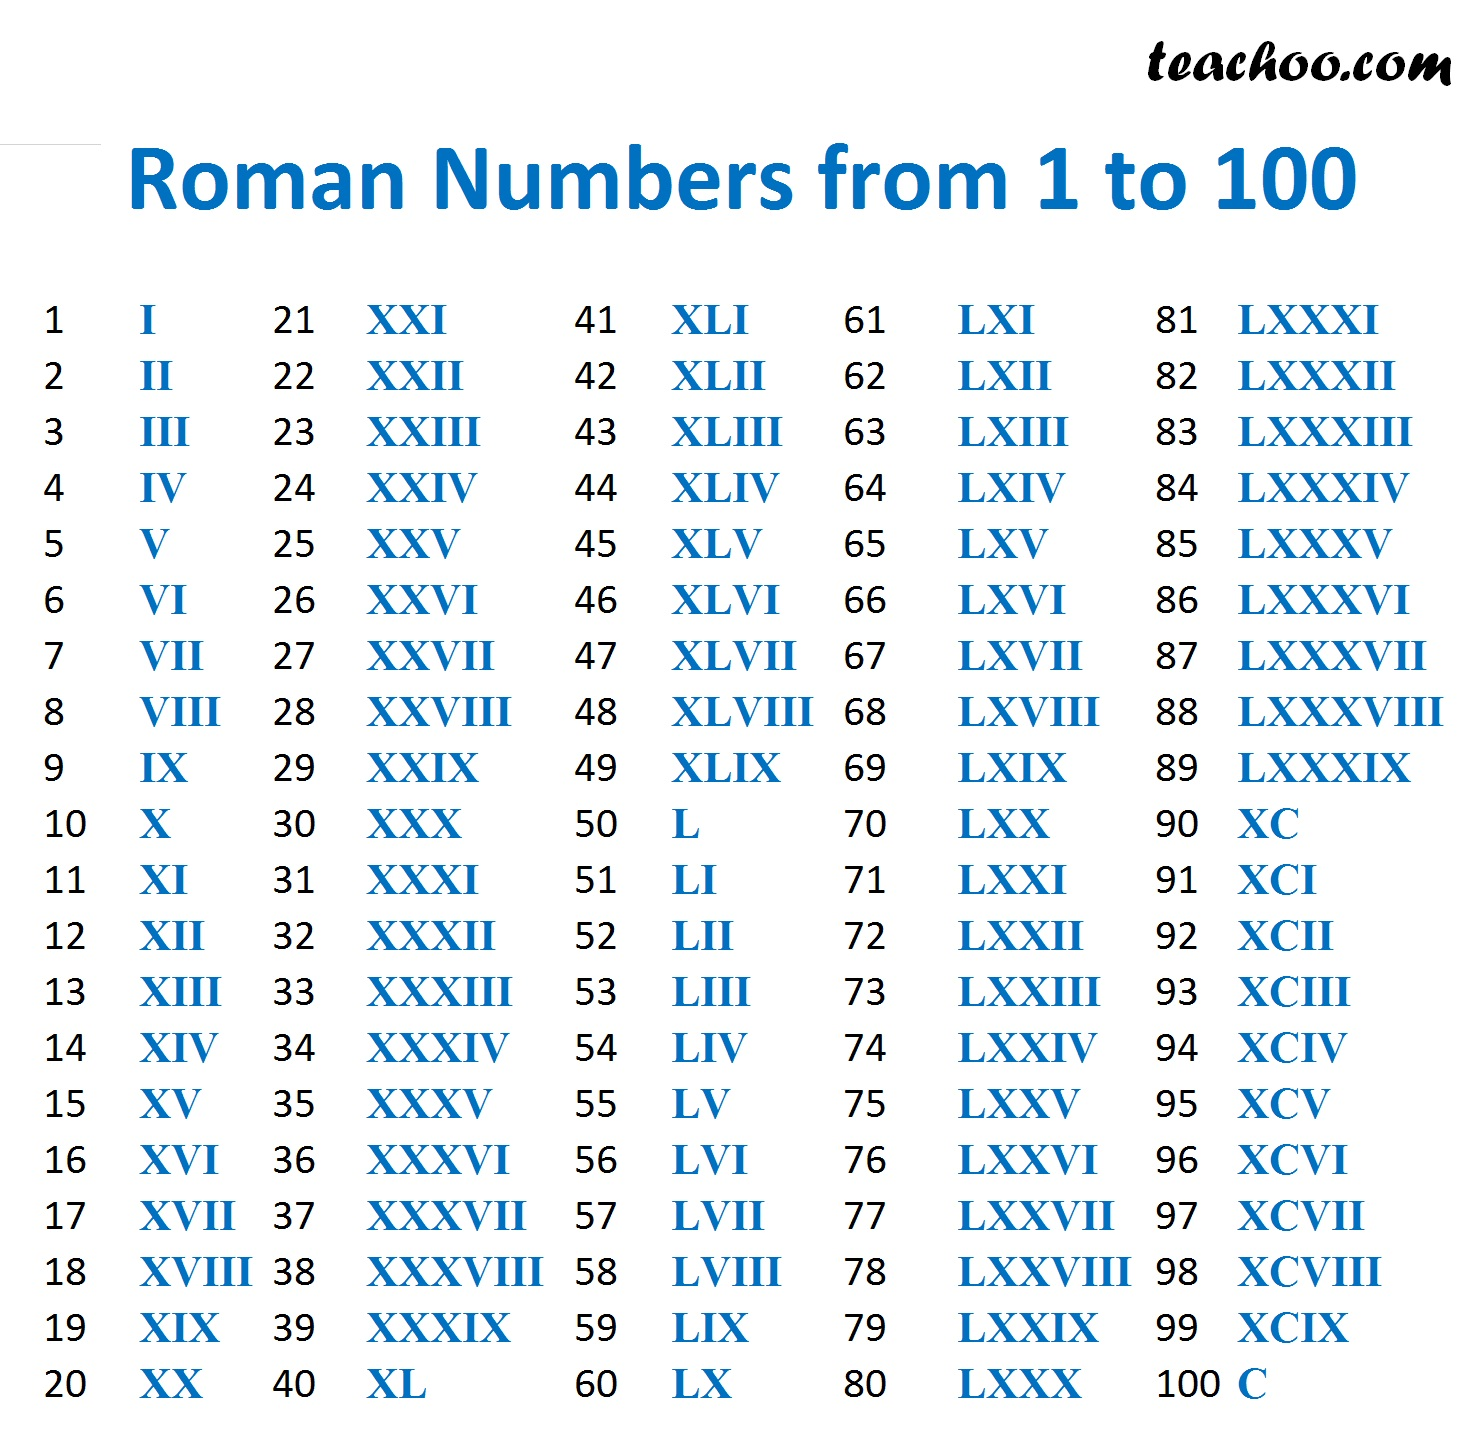 Roman Numbers From 1 To 100